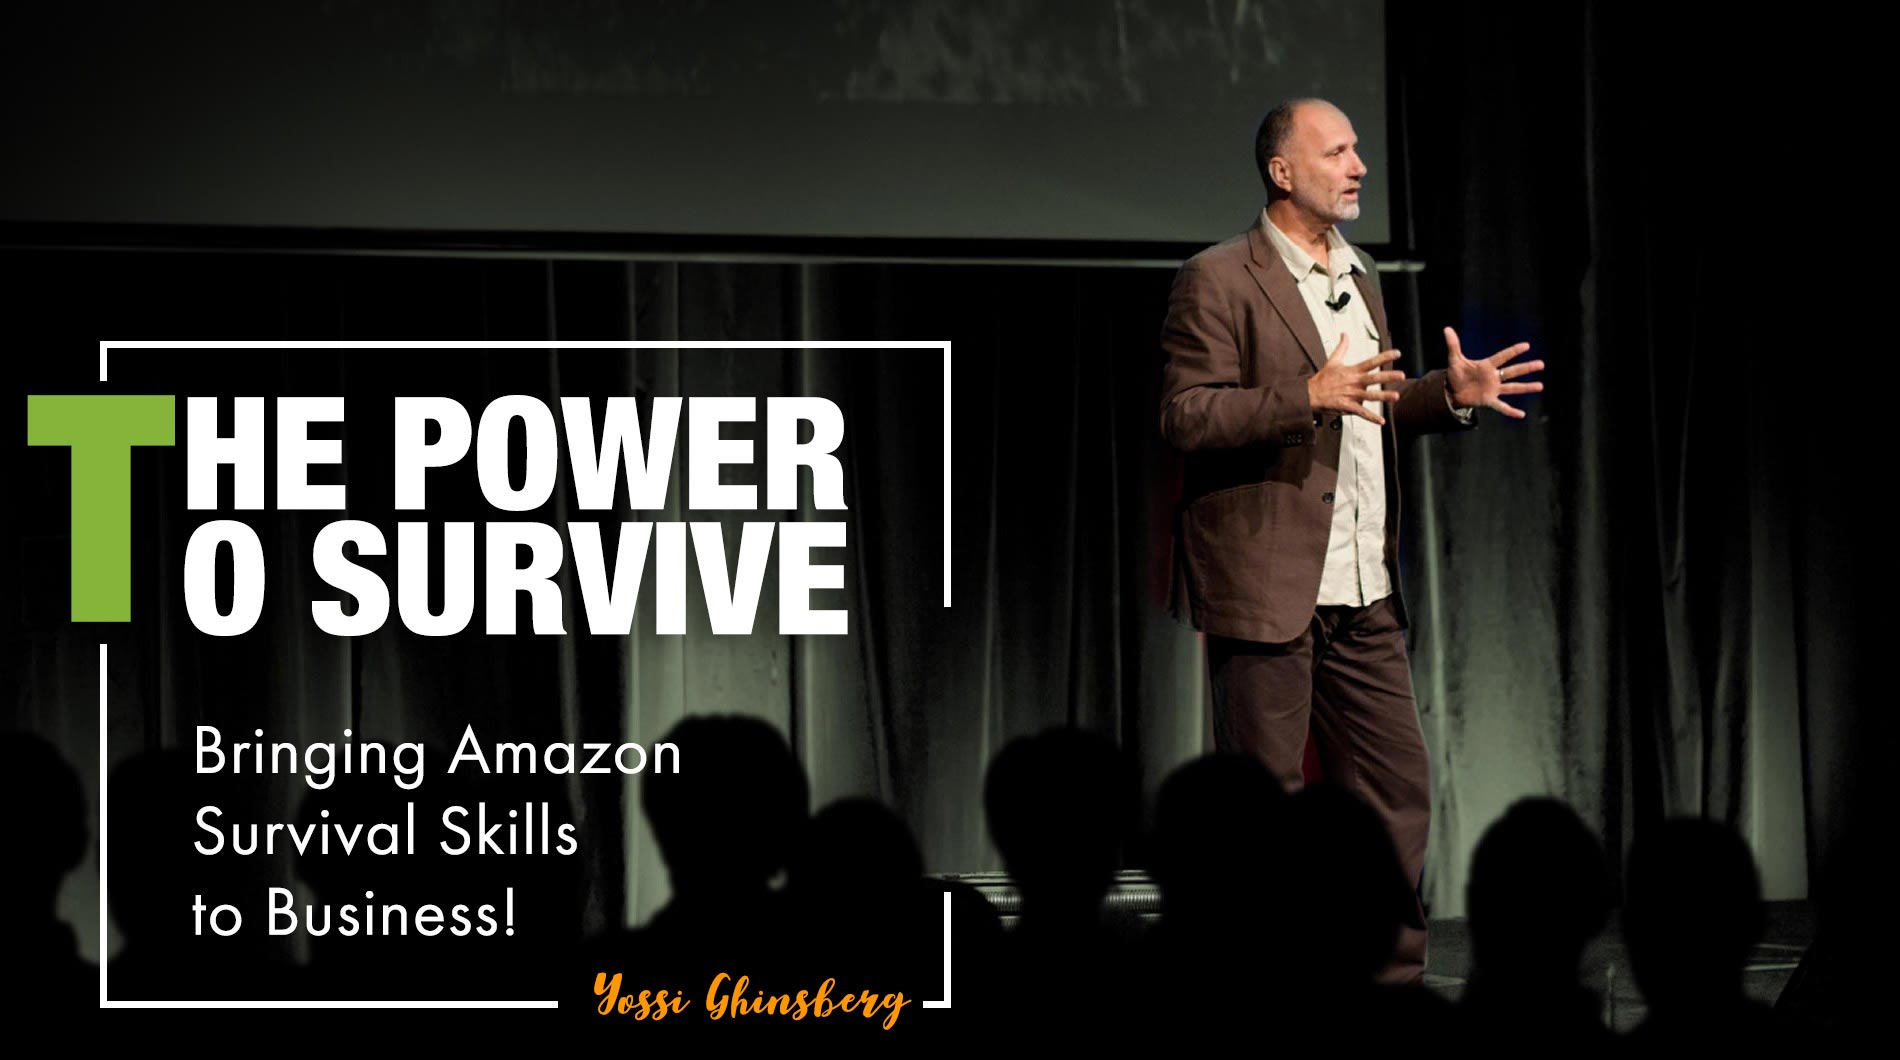 THE POWER O SURVIVE, Bringing Amazon Survival Skills to Business!